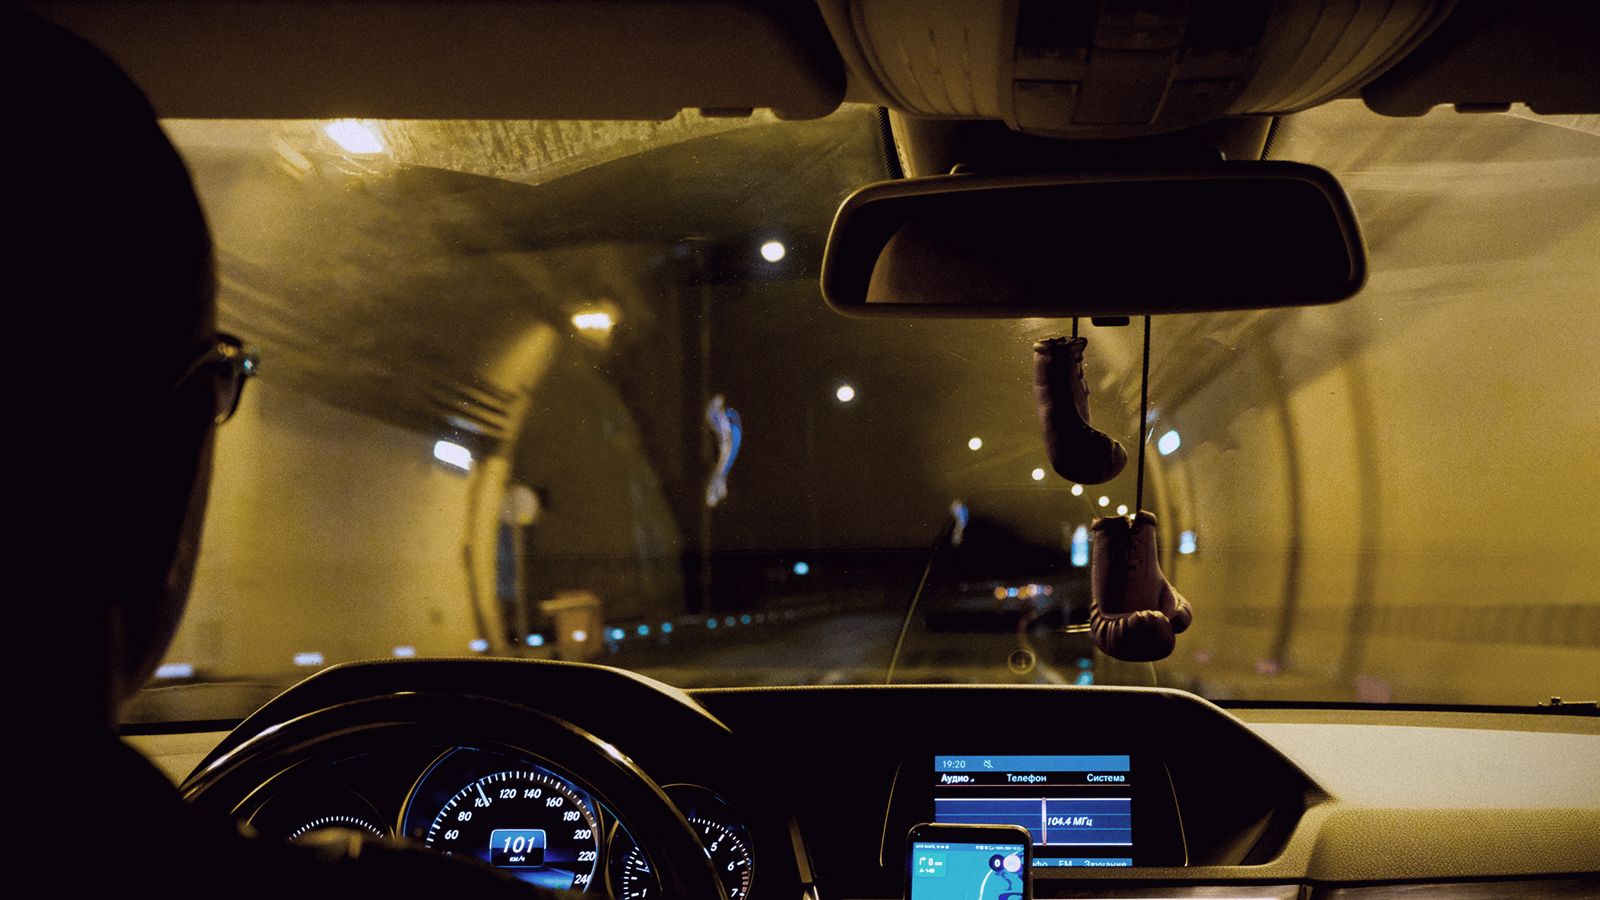 5 Tips to get clear vision while driving at night?